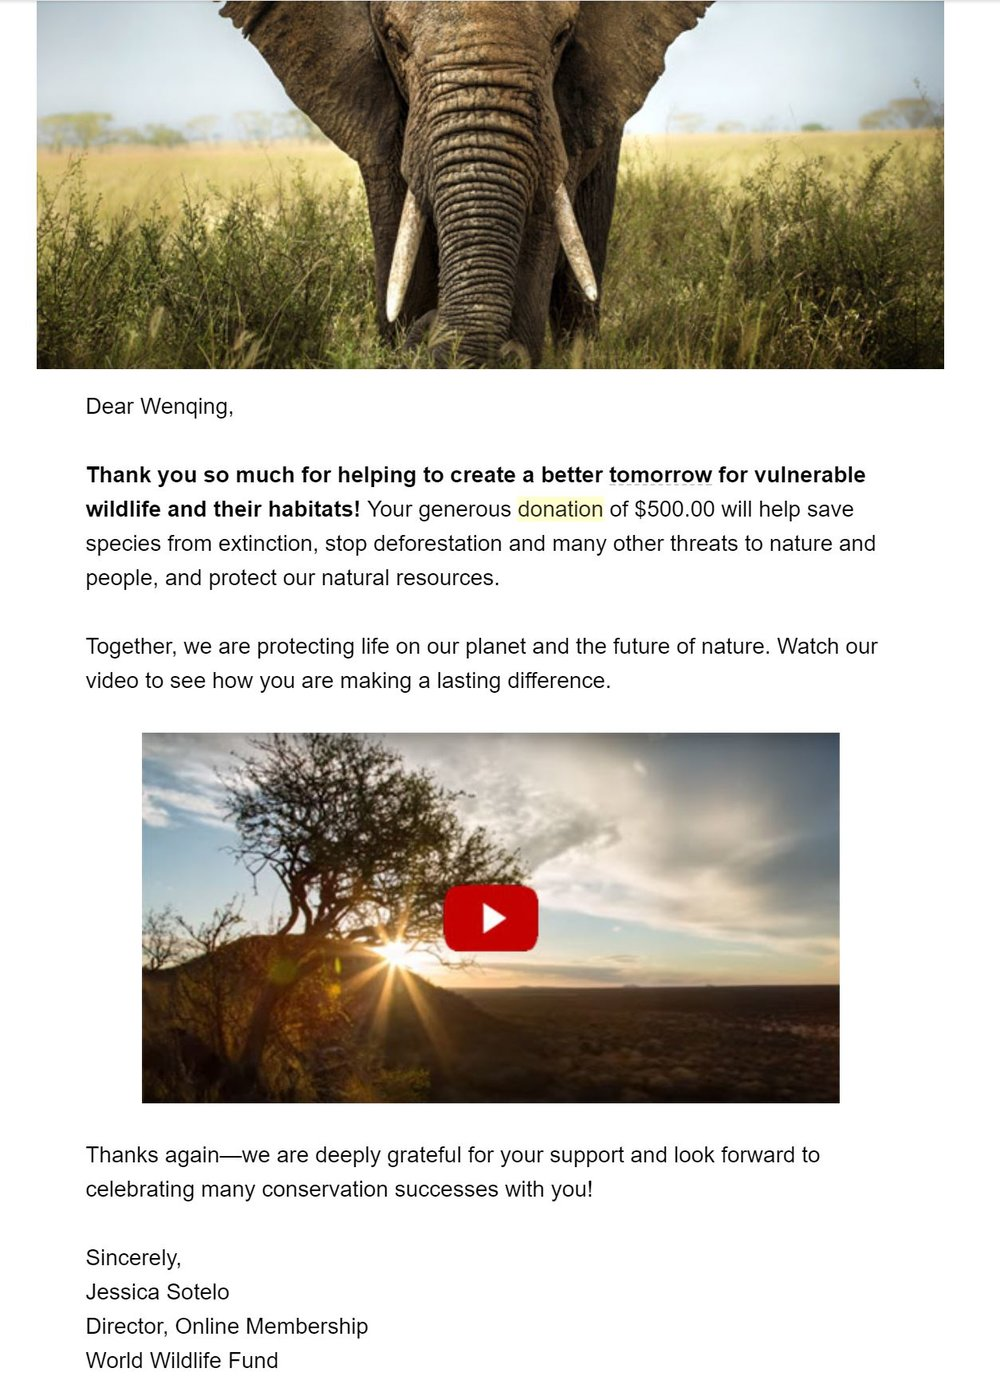 World Wildlife Fund 500 dollars.JPG